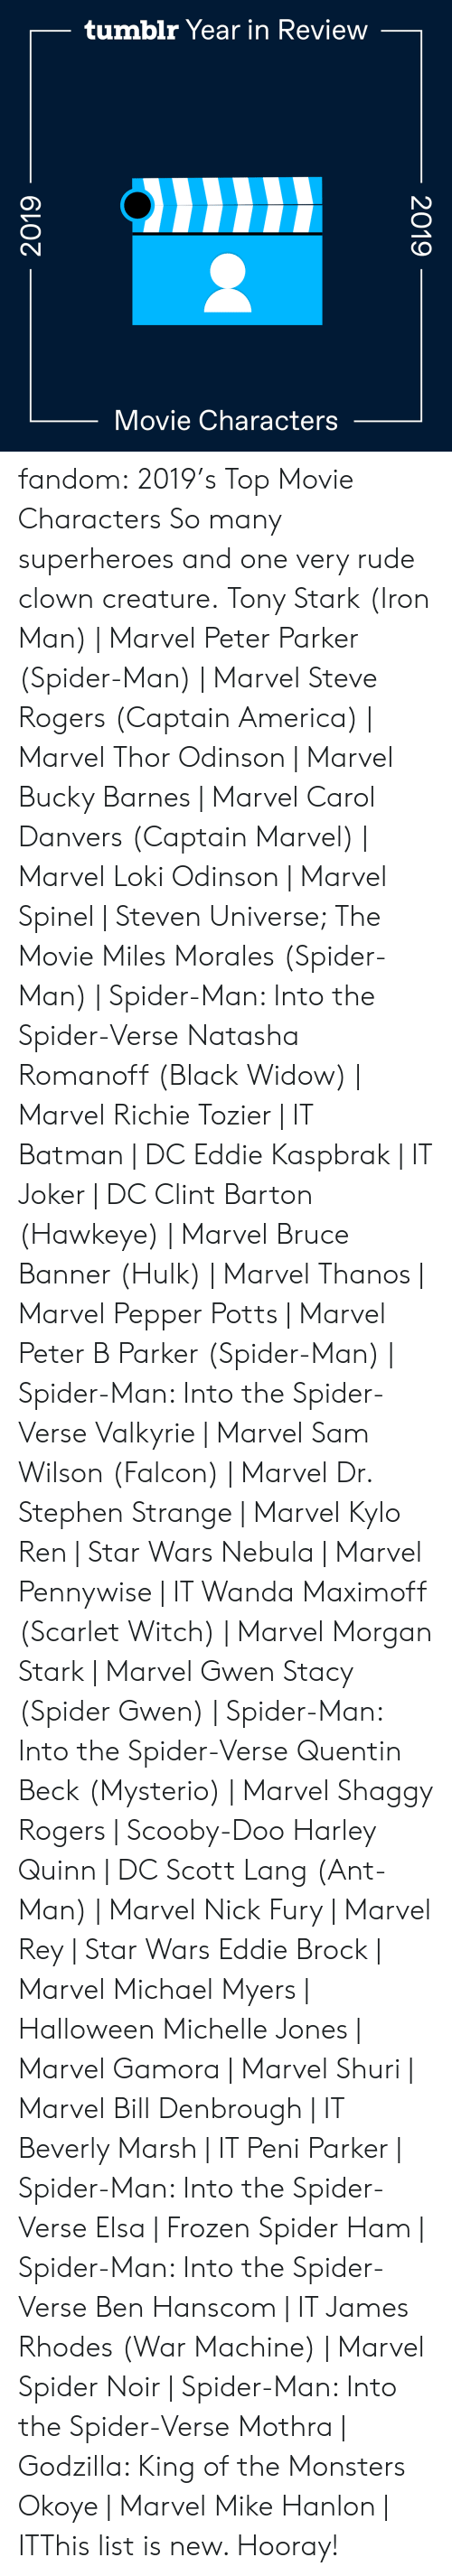 Miles Morales: tumblr Year in Review  Movie Characters  2019  2019 fandom:  2019's Top Movie Characters  So many superheroes and one very rude clown creature.  Tony Stark (Iron Man) | Marvel  Peter Parker (Spider-Man) | Marvel  Steve Rogers (Captain America) | Marvel  Thor Odinson | Marvel  Bucky Barnes | Marvel  Carol Danvers (Captain Marvel) | Marvel  Loki Odinson | Marvel  Spinel | Steven Universe; The Movie  Miles Morales (Spider-Man) | Spider-Man: Into the Spider-Verse  Natasha Romanoff (Black Widow) | Marvel  Richie Tozier | IT  Batman | DC  Eddie Kaspbrak | IT  Joker | DC  Clint Barton (Hawkeye) | Marvel  Bruce Banner (Hulk) | Marvel  Thanos | Marvel  Pepper Potts | Marvel  Peter B Parker (Spider-Man) | Spider-Man: Into the Spider-Verse  Valkyrie | Marvel  Sam Wilson (Falcon) | Marvel  Dr. Stephen Strange | Marvel  Kylo Ren | Star Wars  Nebula | Marvel  Pennywise | IT  Wanda Maximoff (Scarlet Witch) | Marvel  Morgan Stark | Marvel  Gwen Stacy (Spider Gwen) | Spider-Man: Into the Spider-Verse  Quentin Beck (Mysterio) | Marvel  Shaggy Rogers | Scooby-Doo  Harley Quinn | DC  Scott Lang (Ant-Man) | Marvel  Nick Fury | Marvel  Rey | Star Wars  Eddie Brock | Marvel  Michael Myers | Halloween  Michelle Jones | Marvel  Gamora | Marvel  Shuri | Marvel  Bill Denbrough | IT  Beverly Marsh | IT  Peni Parker | Spider-Man: Into the Spider-Verse  Elsa | Frozen  Spider Ham | Spider-Man: Into the Spider-Verse  Ben Hanscom | IT  James Rhodes (War Machine) | Marvel  Spider Noir | Spider-Man: Into the Spider-Verse  Mothra | Godzilla: King of the Monsters  Okoye | Marvel Mike Hanlon | ITThis list is new. Hooray!